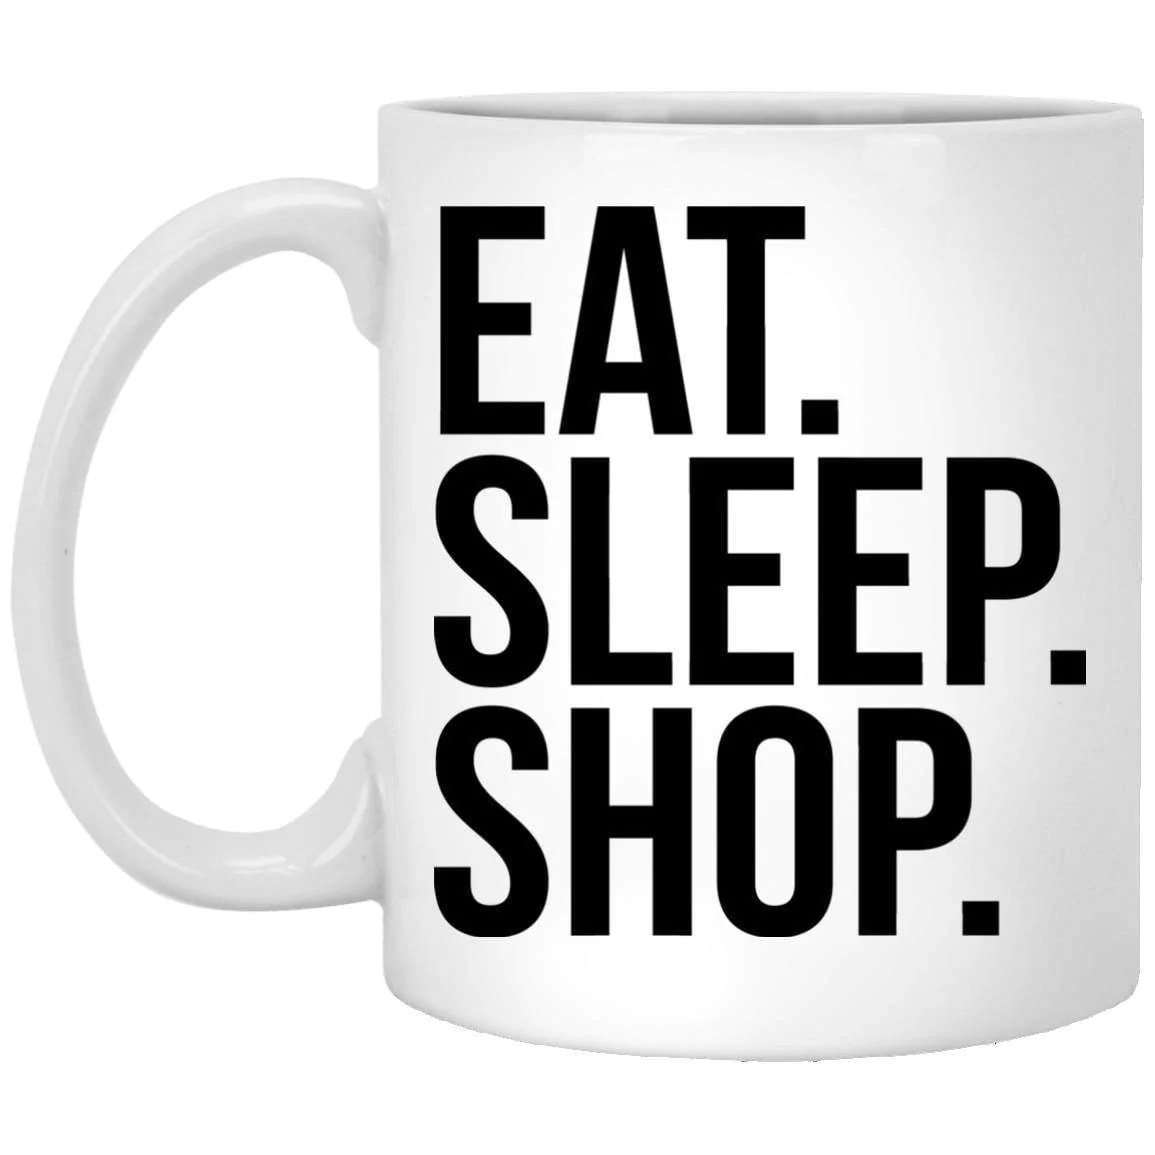 Where To Buy Nice Coffee Mugs Eat Sleep Shop Coffee Mug